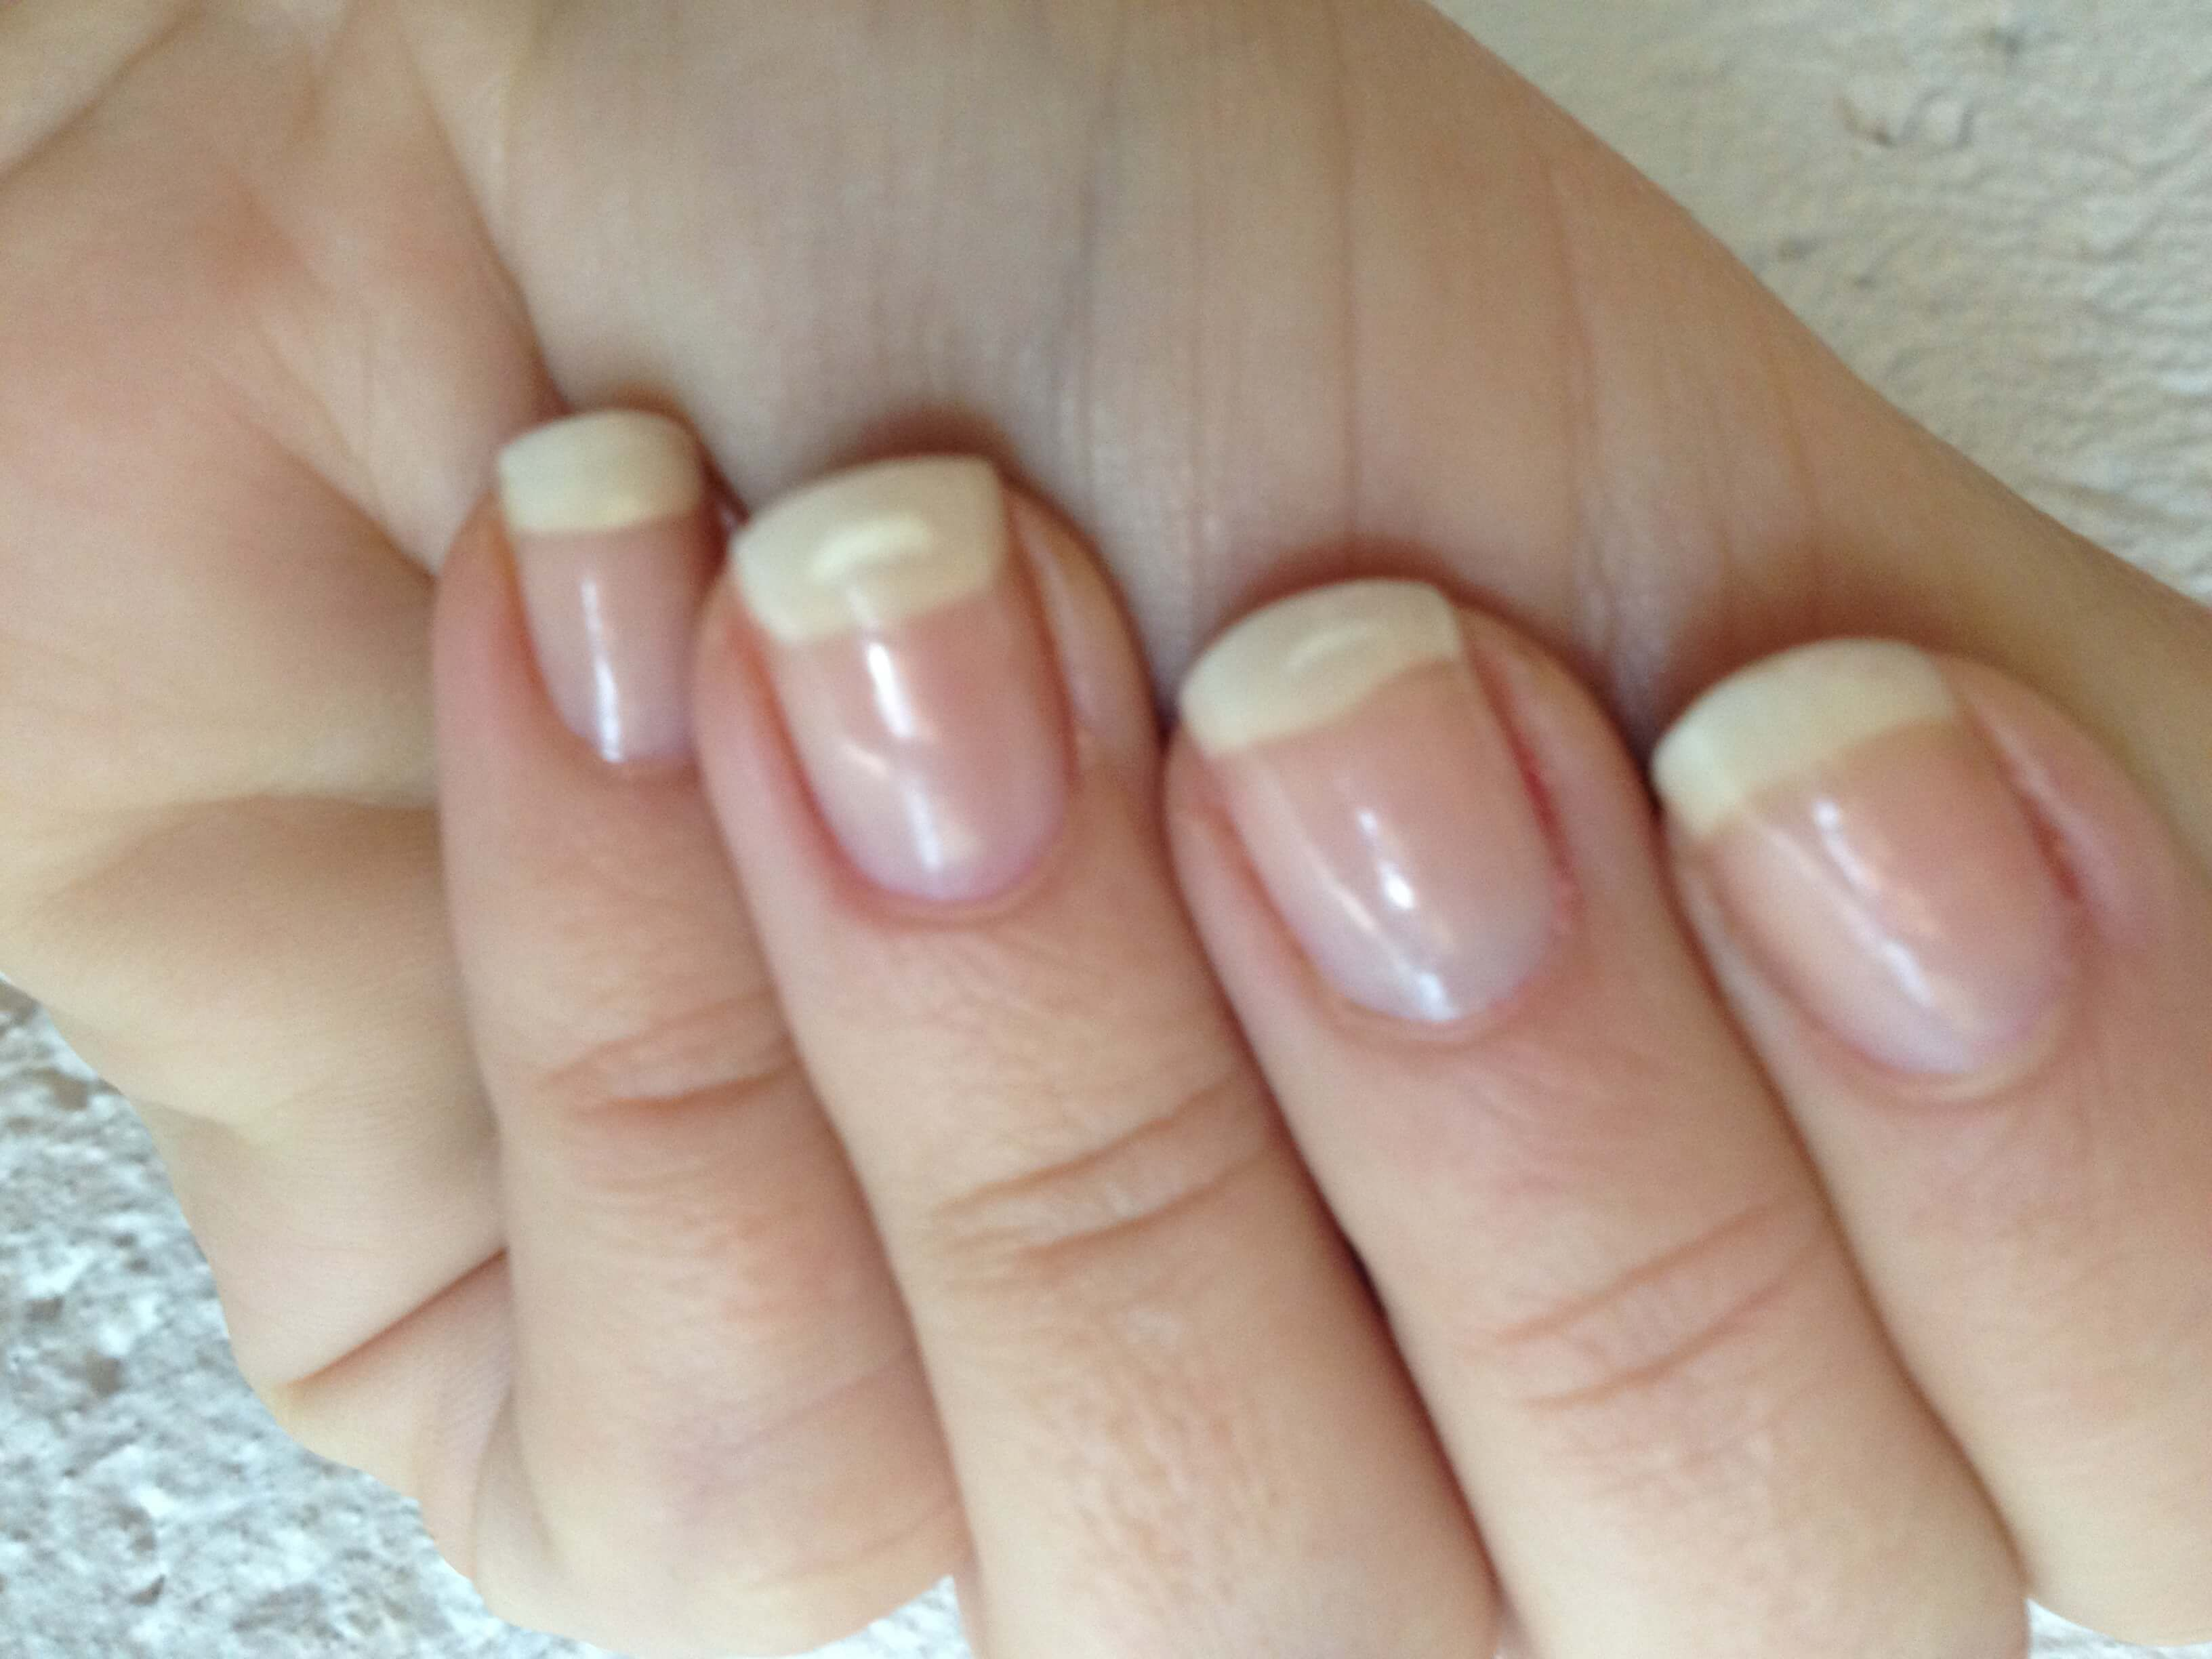 Best glass nail files for healthier nails   Tammy   Pinterest ...